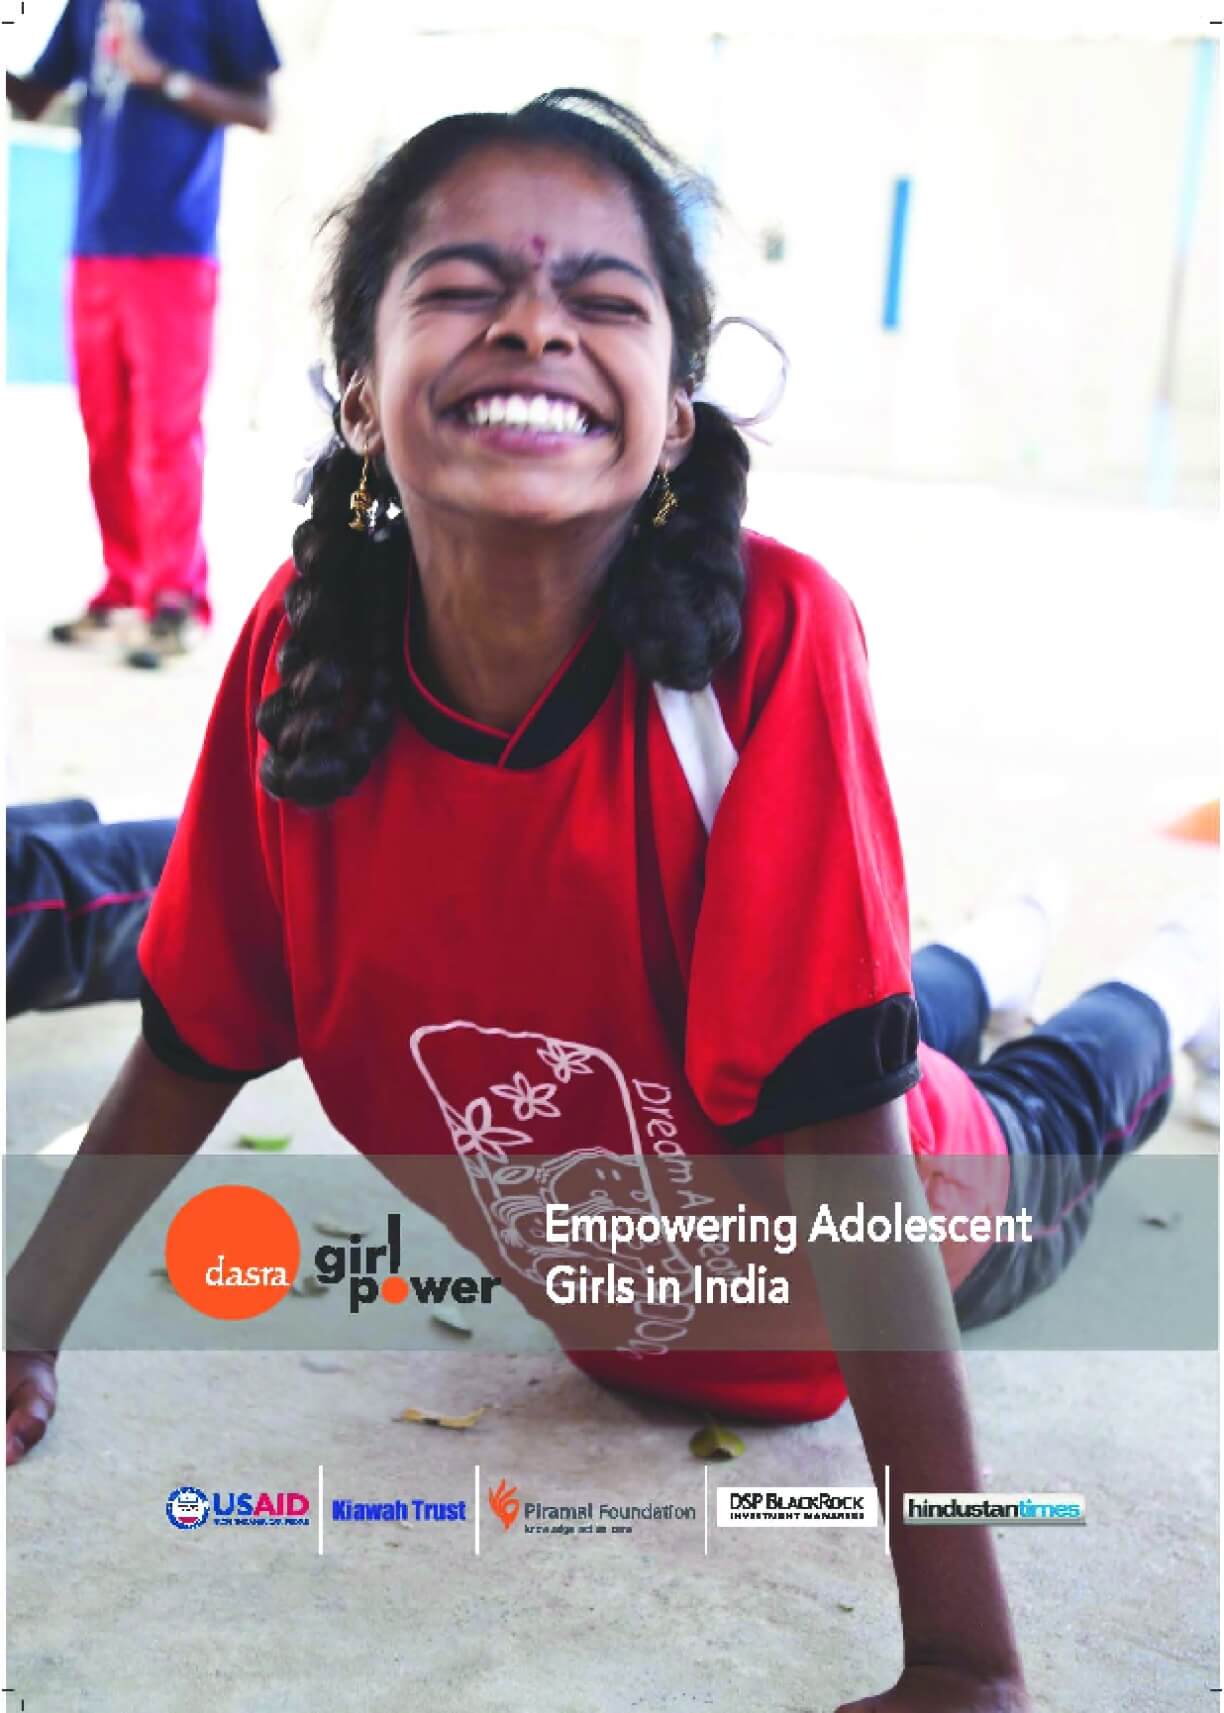 Girl Power: Empowering Adolescent Girls in India